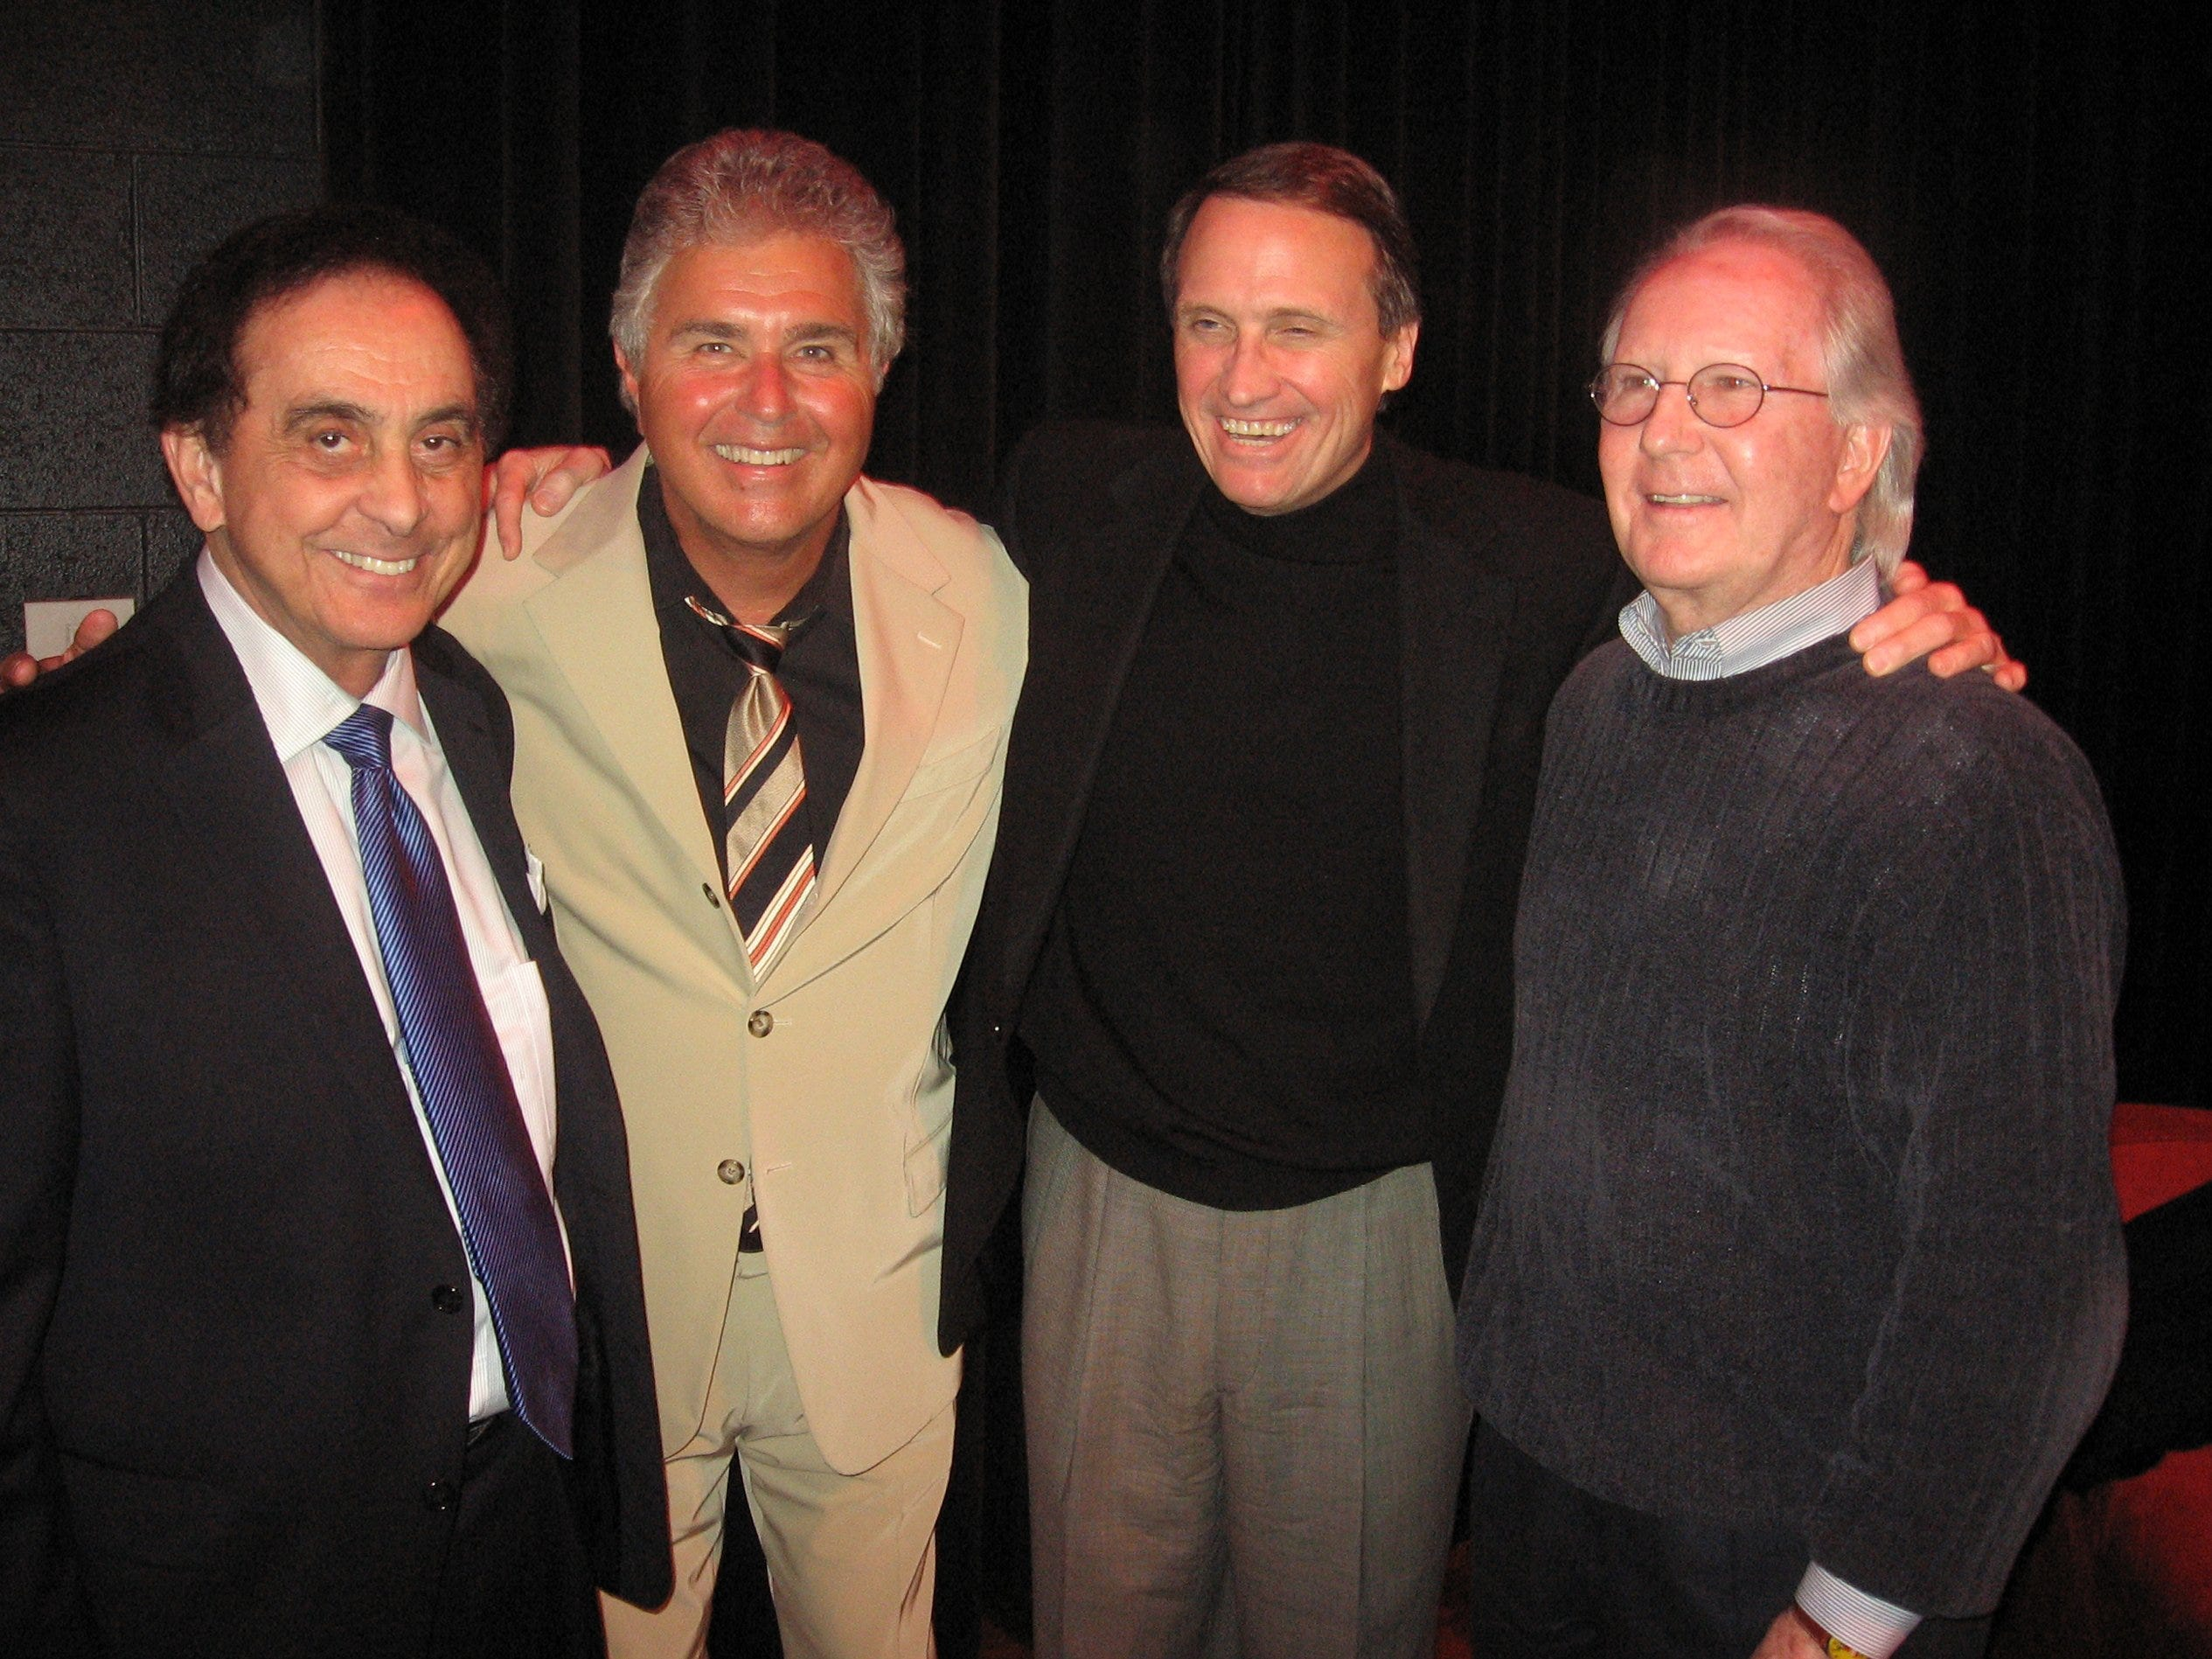 Singer Steve Tyrell (second from left) met with some of his Memphis buddies at a party after his concert Sunday at the Germantown Performing Arts Centre. Ted Donaldson (second from right) hosted the party, which drew George Klein (left) and Jerry Williams.